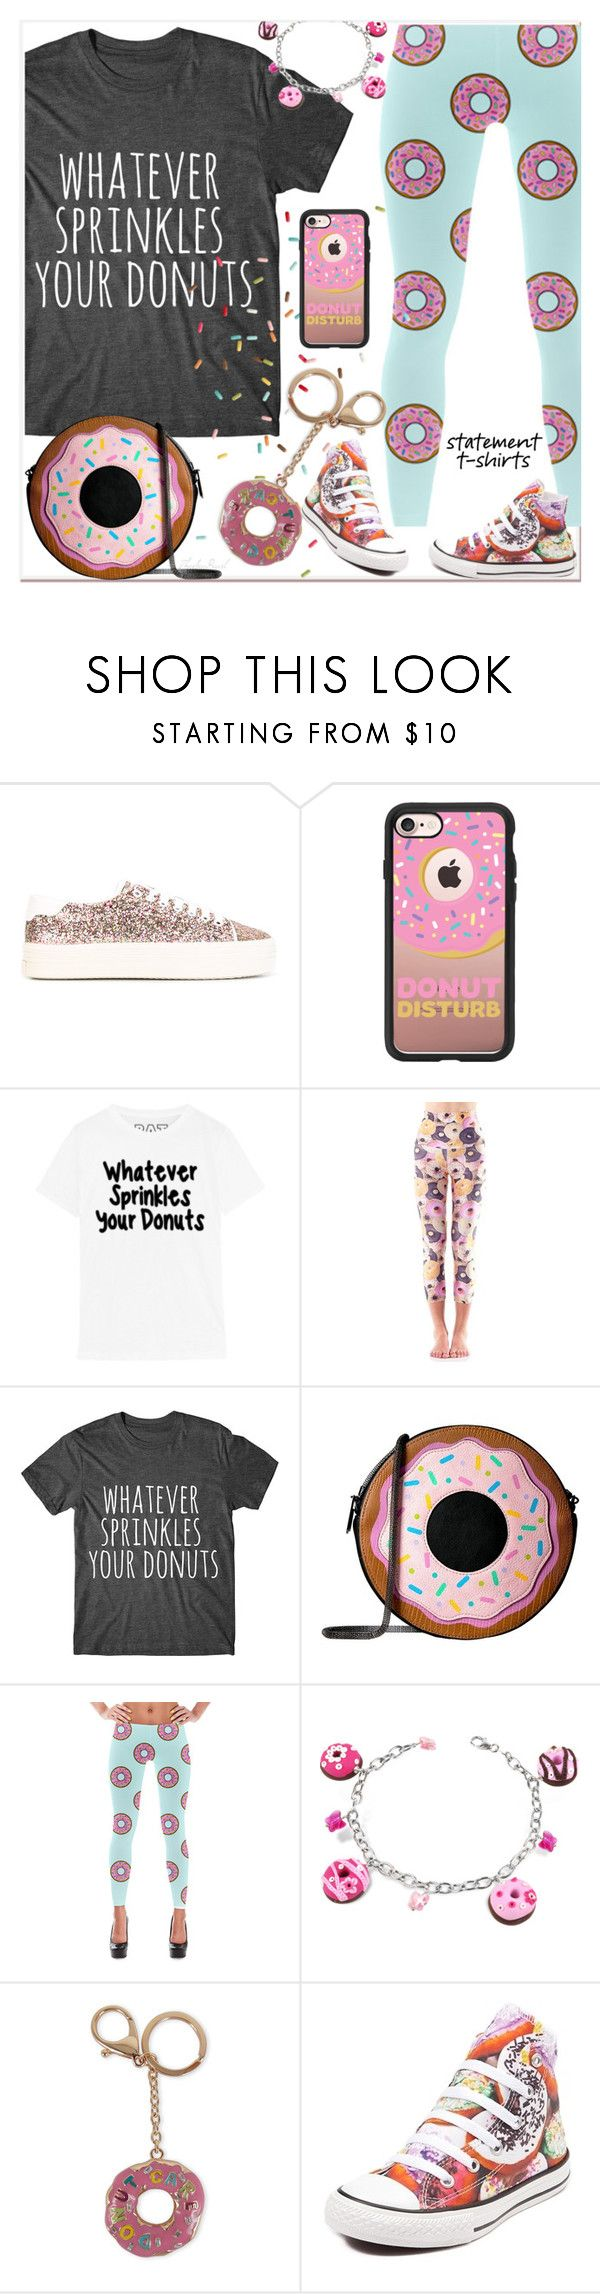 """""""Whatever Sprinkles Your Donuts"""" by theseapearl ❤ liked on Polyvore featuring Yves Saint Laurent, Casetify, Emily Hsu Designs, Circus by Sam Edelman, Dolci Gioie, Viola, Converse, outfit, teen and trend"""